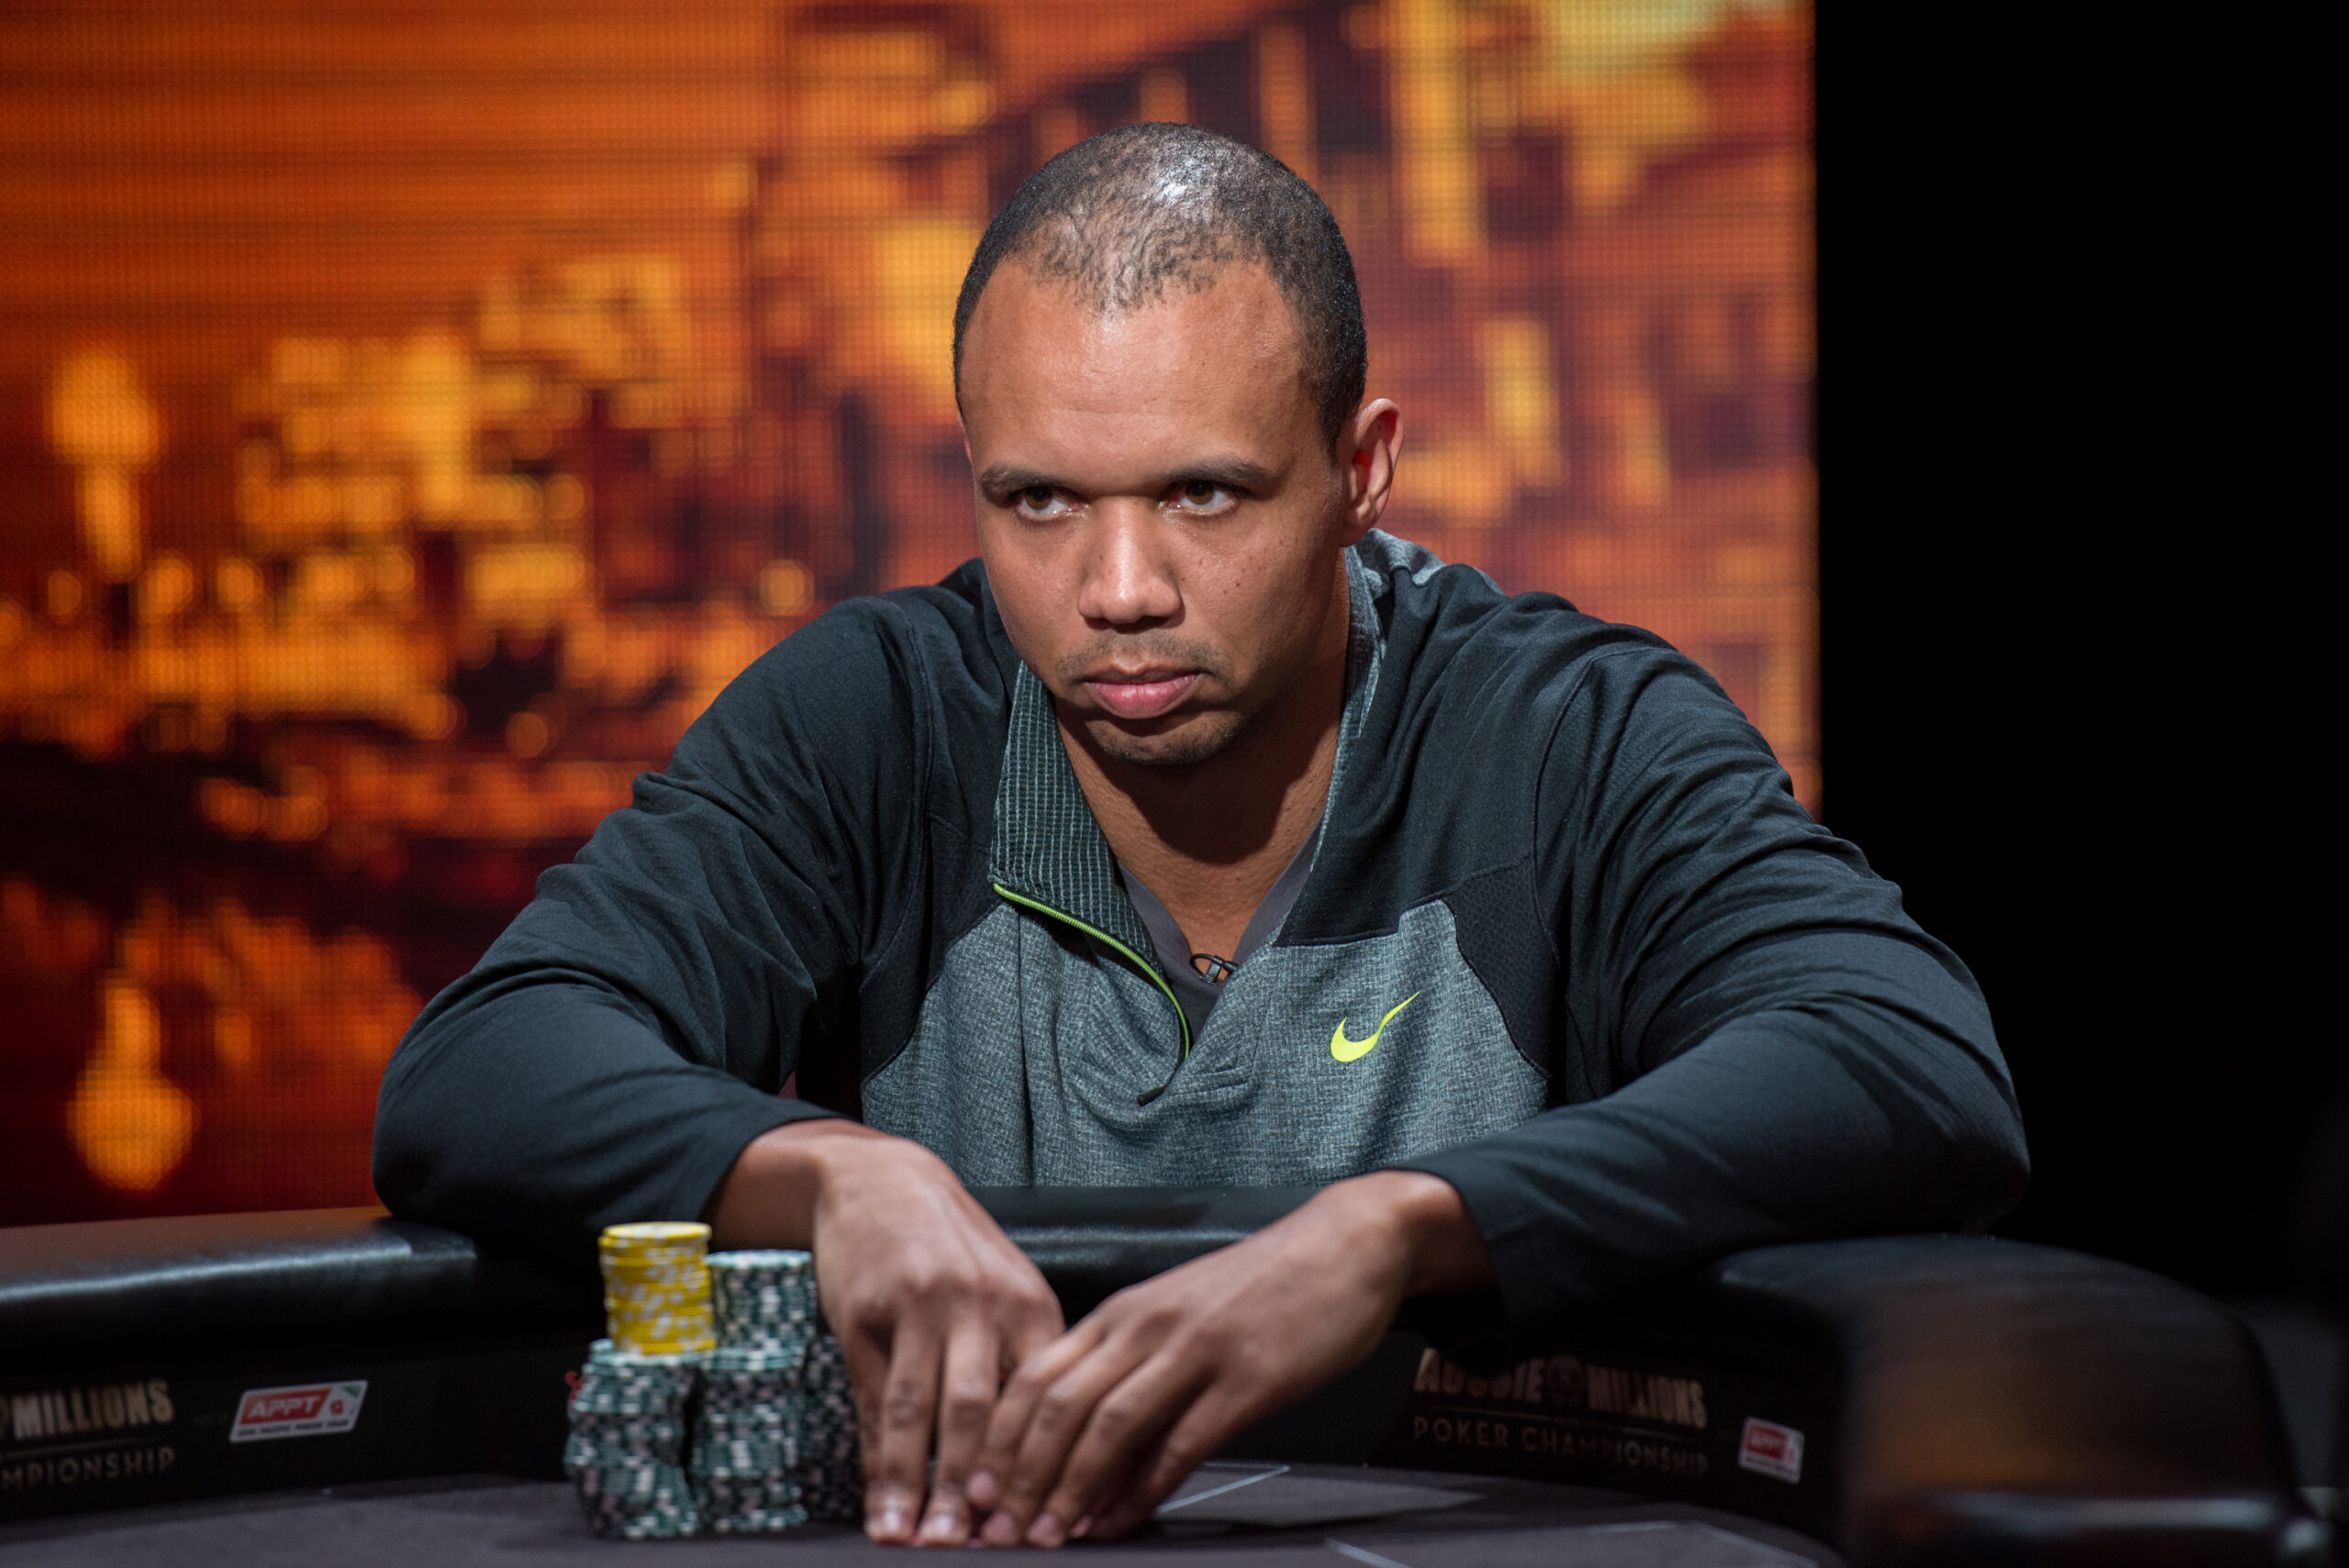 Phil Ivey death stare